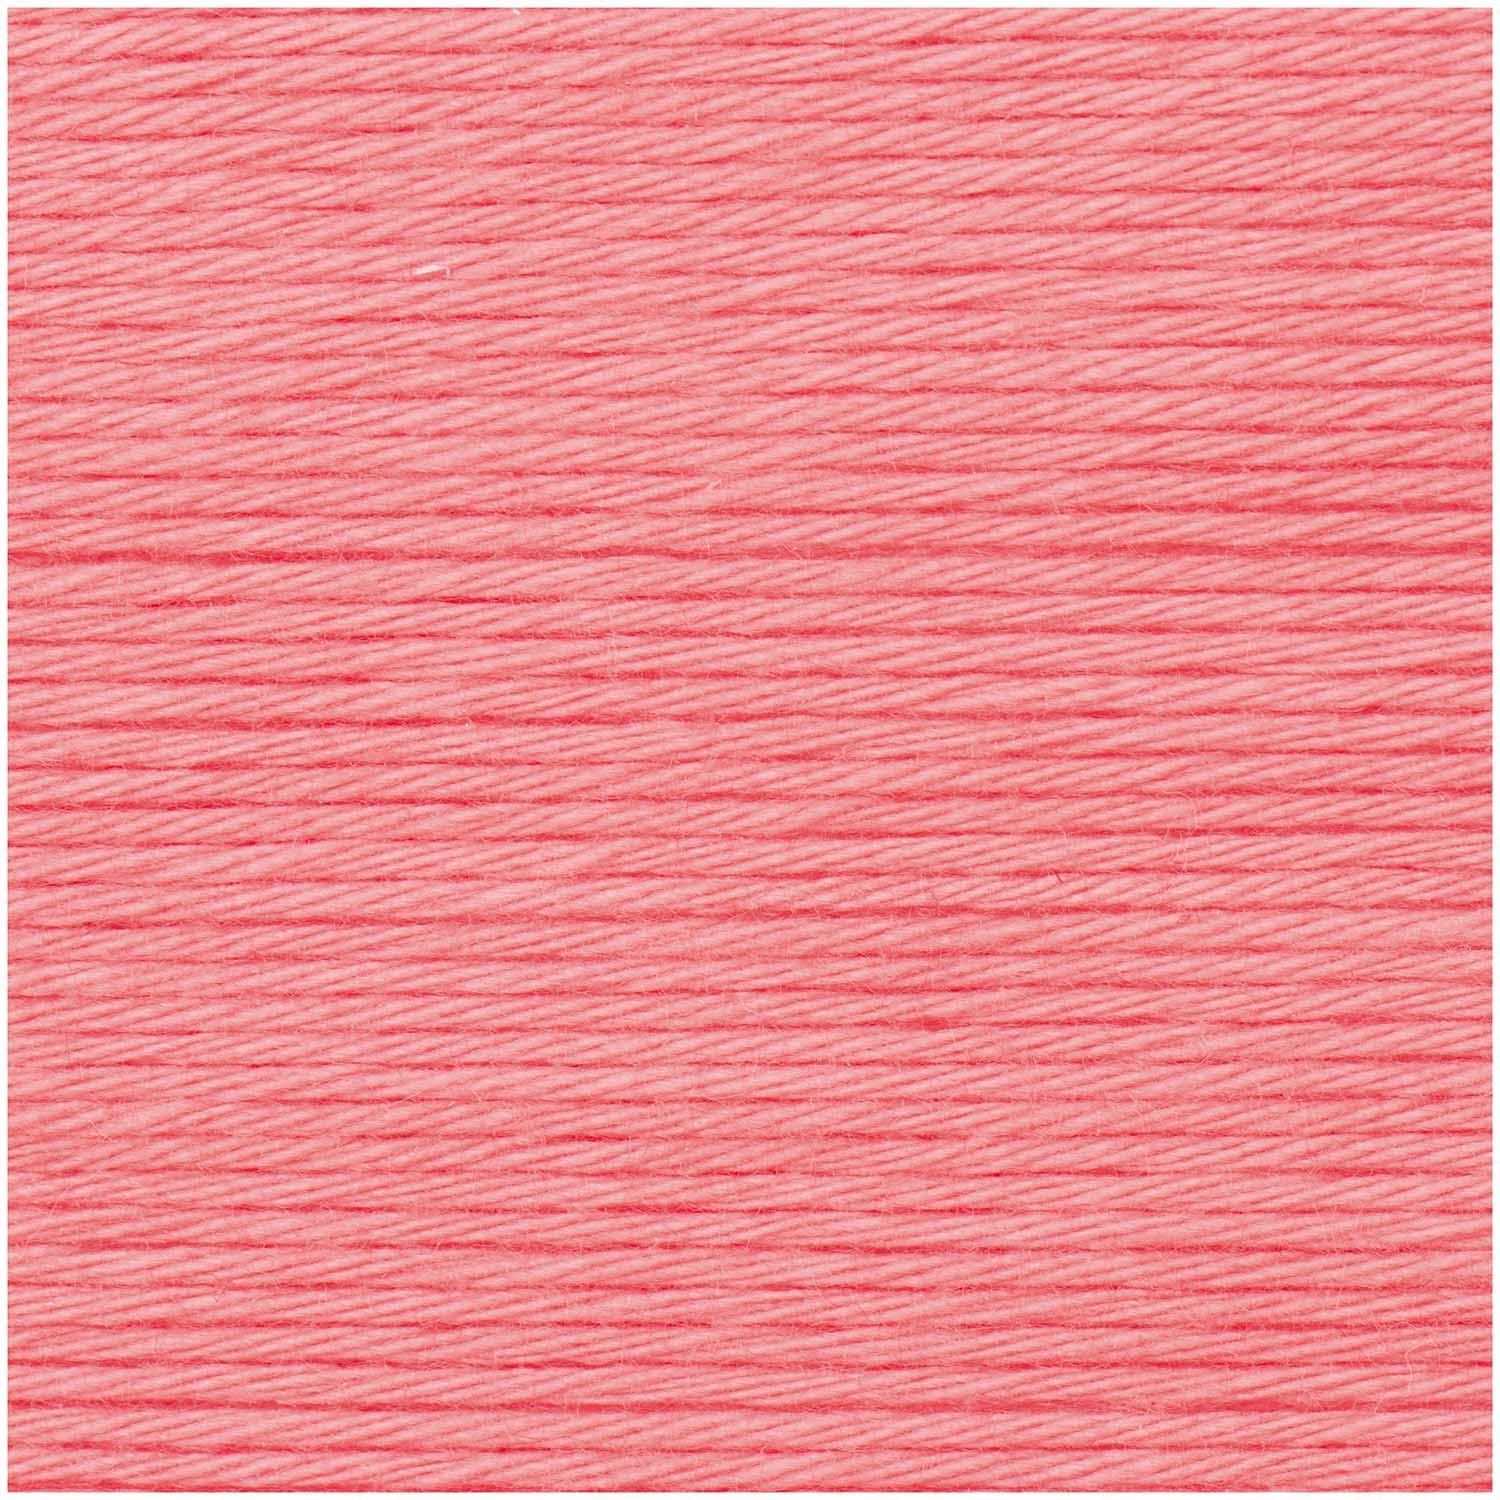 Rico Rico Baby Cotton Soft - 029 - Zalm